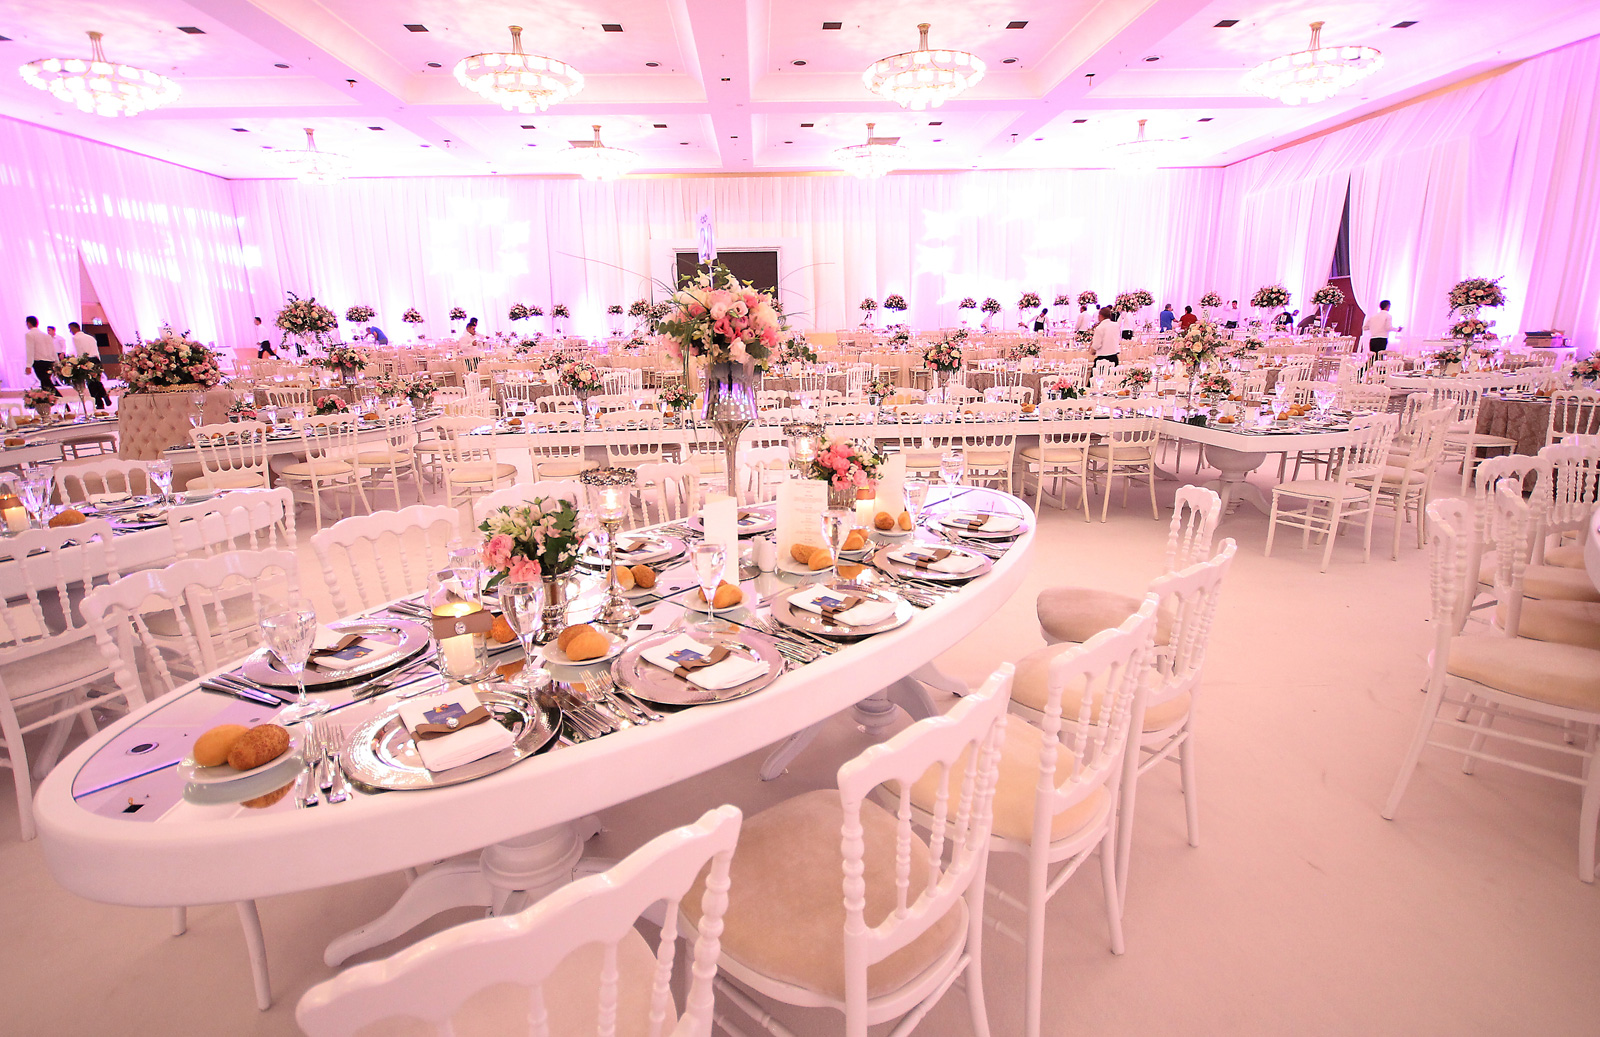 Wedding hall witrh oval shape at Wow Hotels Group